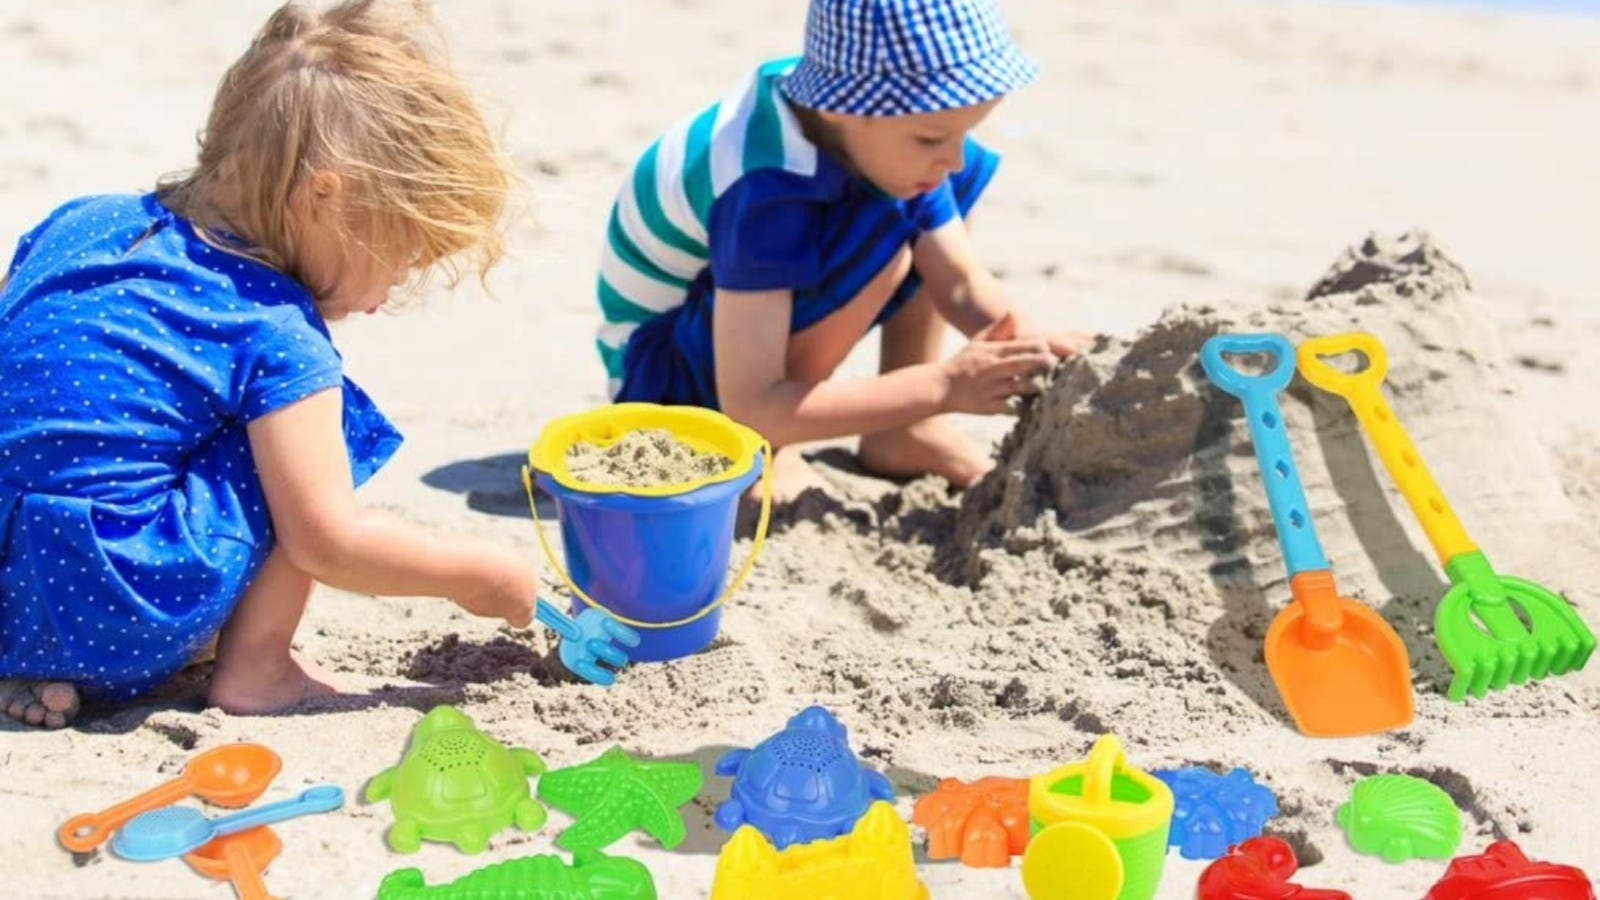 Two young children playing with Click N Play sand toys.